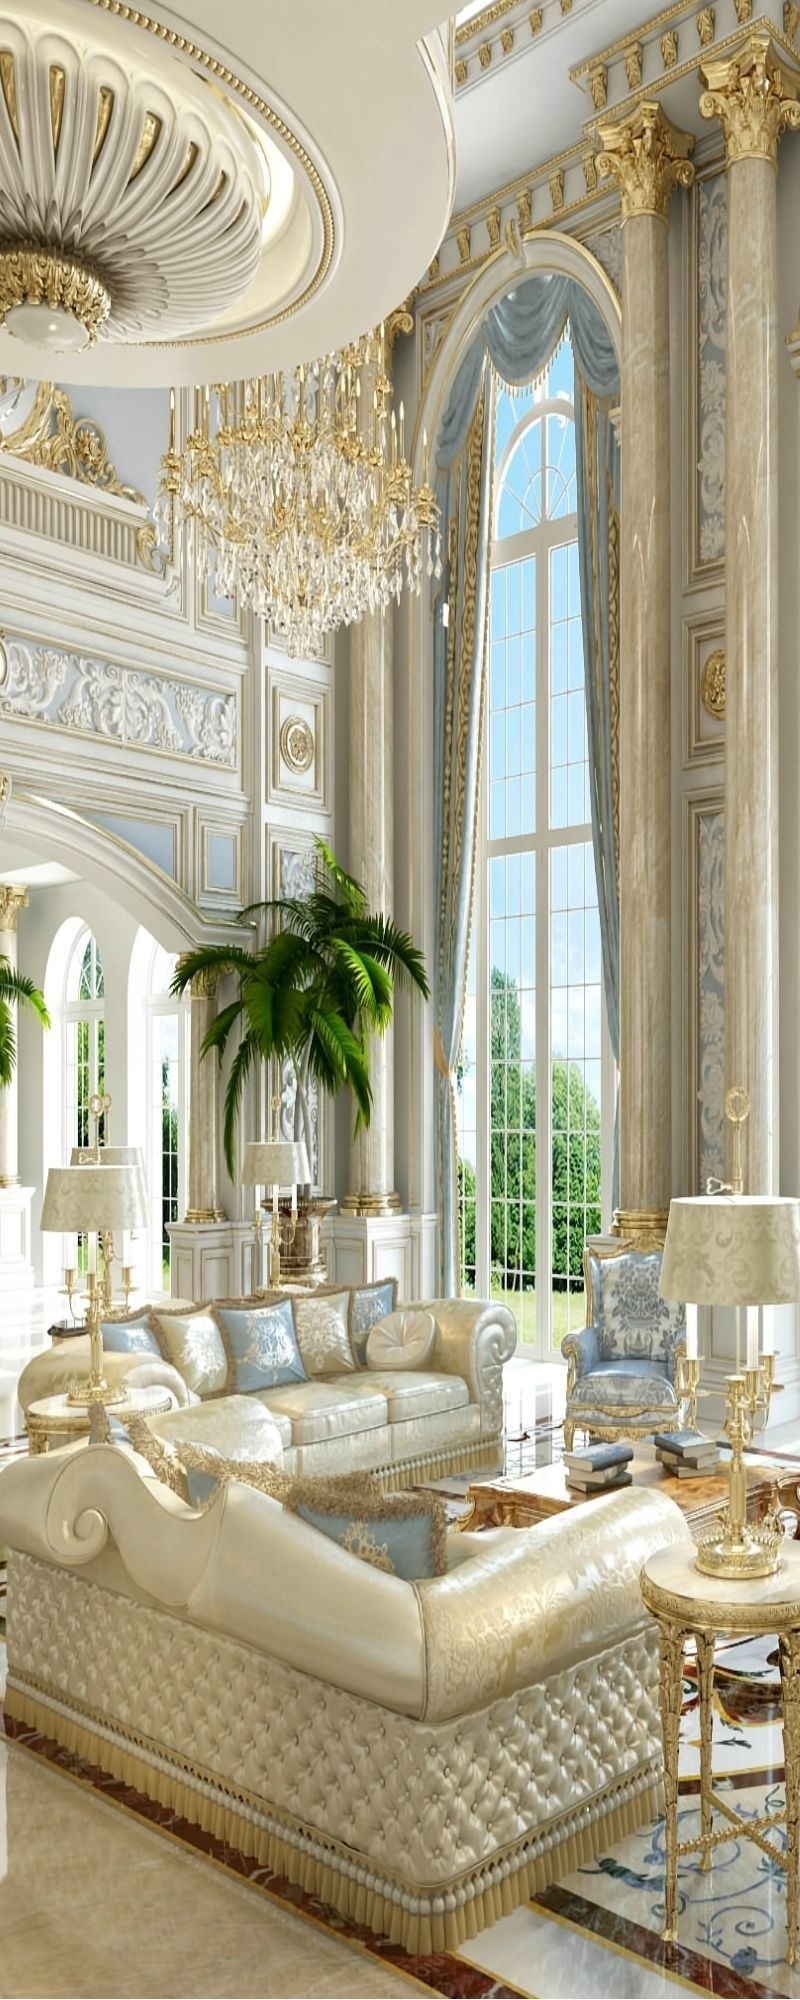 1052 Best Interior Design Images On Pinterest: Find The Best Luxury Inspiration For Your Next Interior